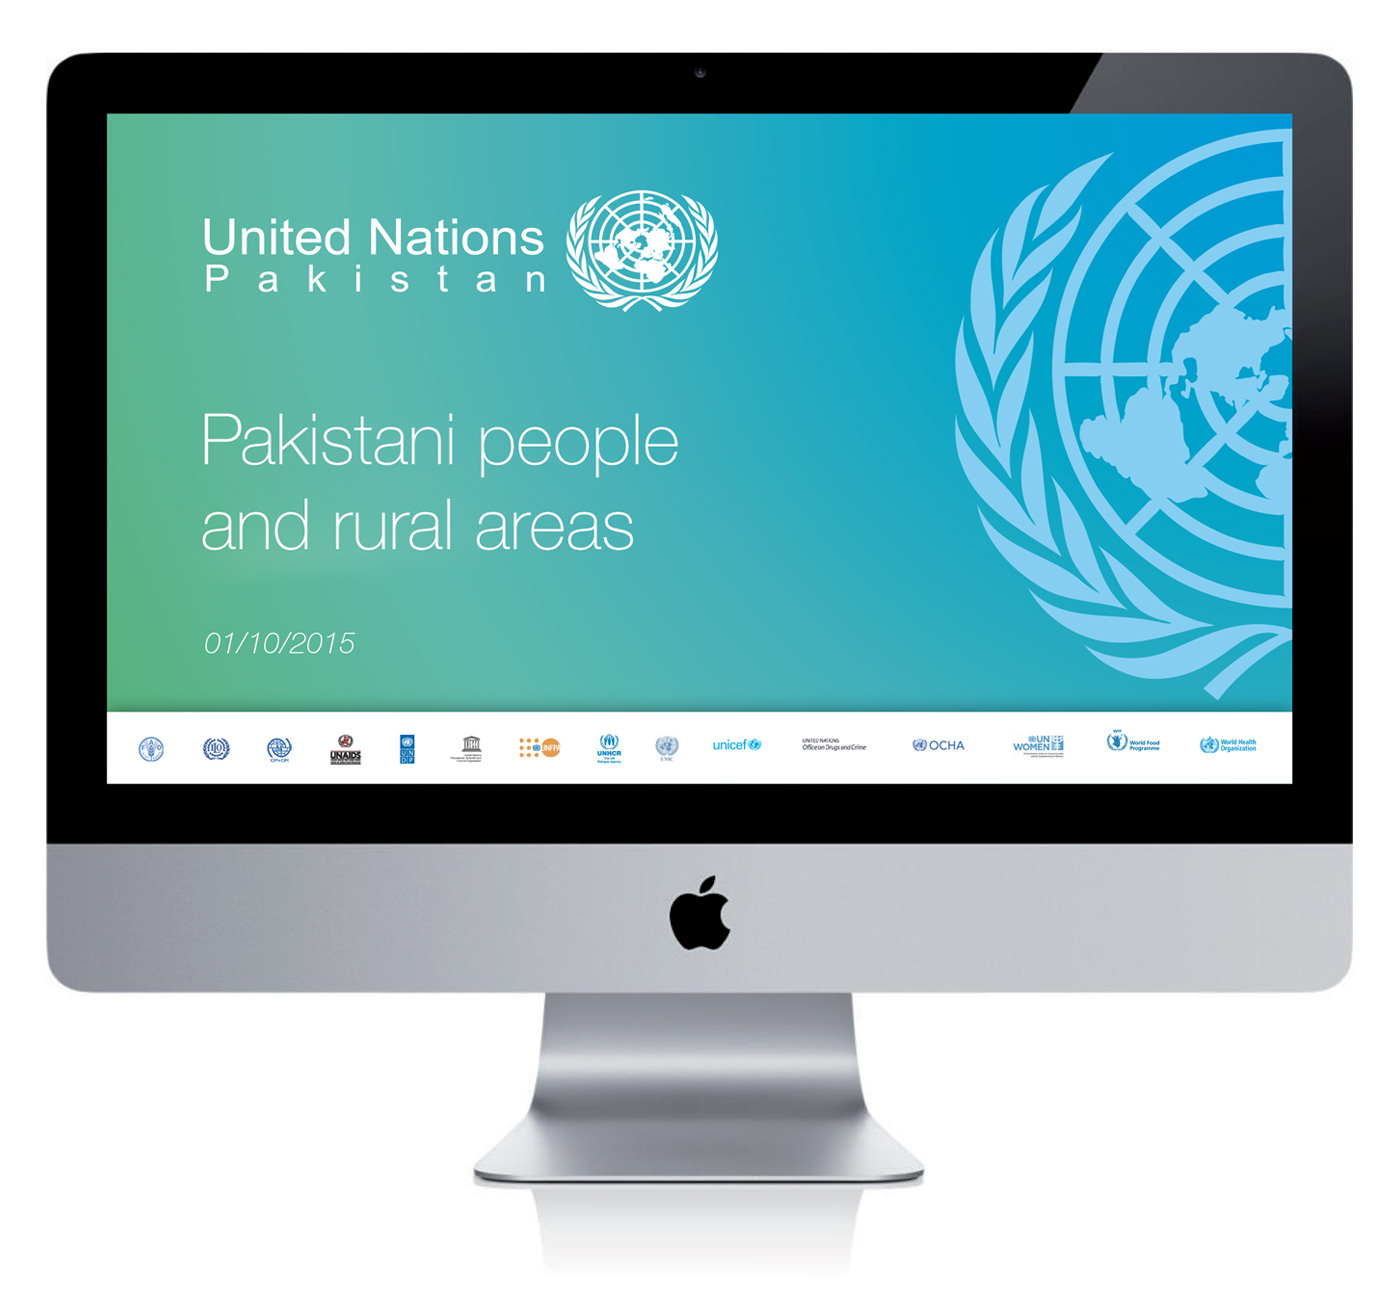 Visual identity immagine coordinata Nazioni Unite United NAtions Pakistan